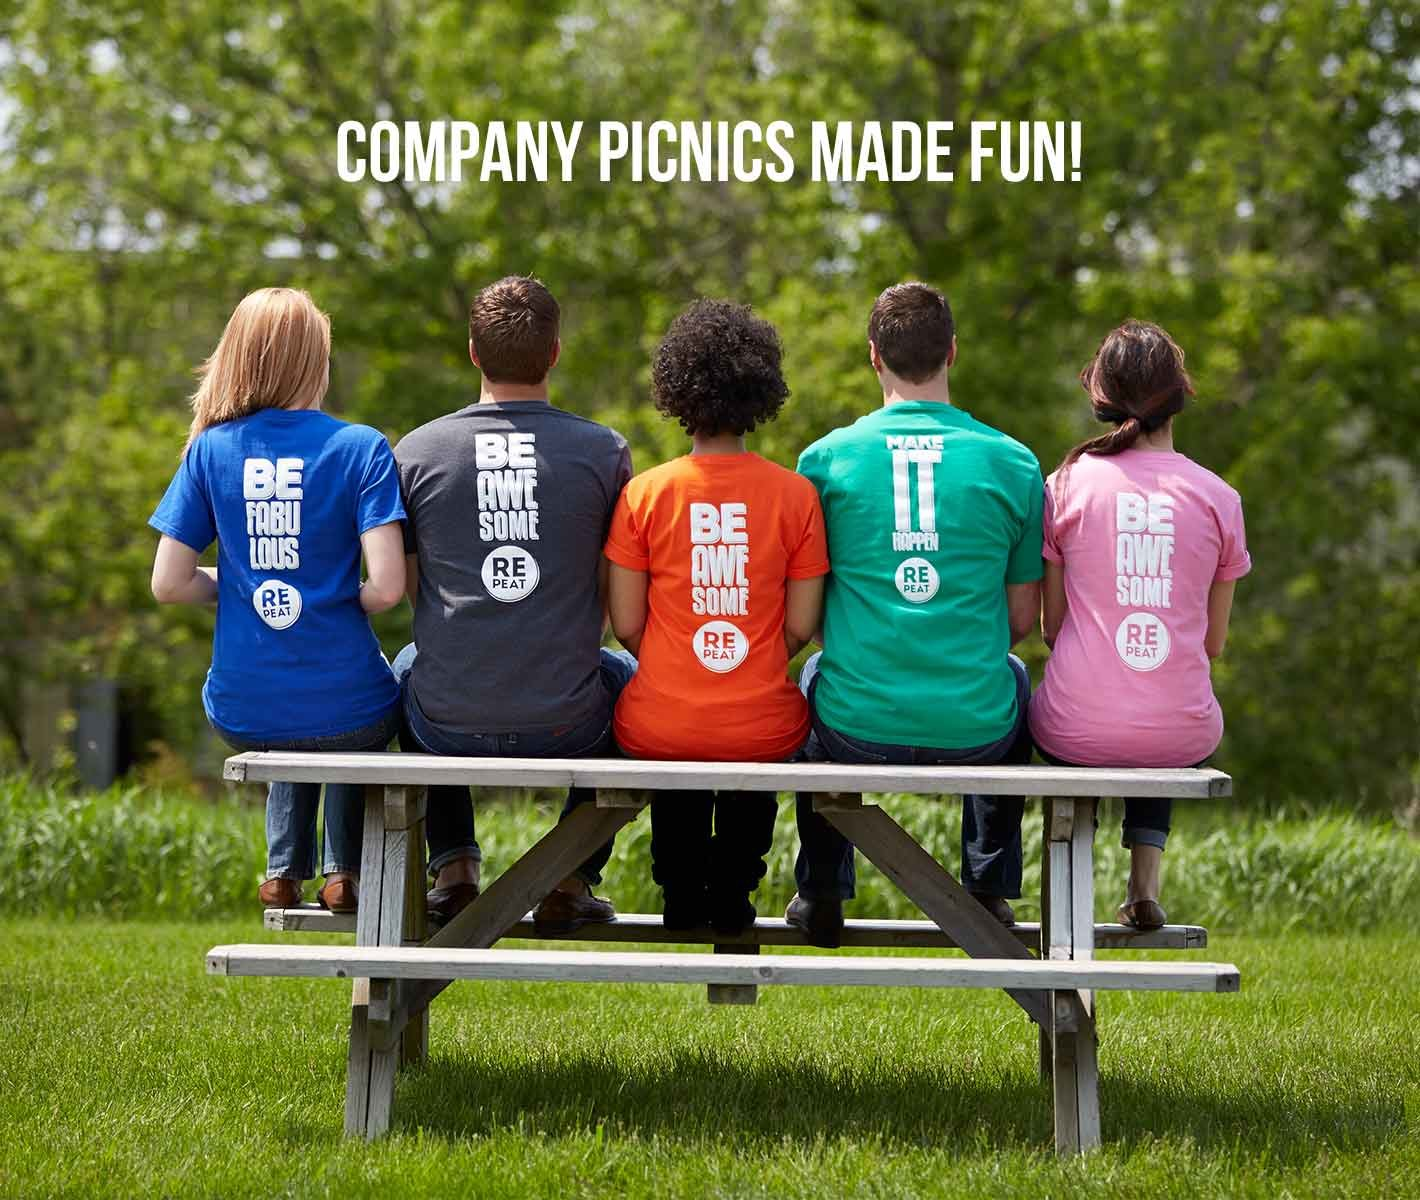 Make Company Picnics Fun!